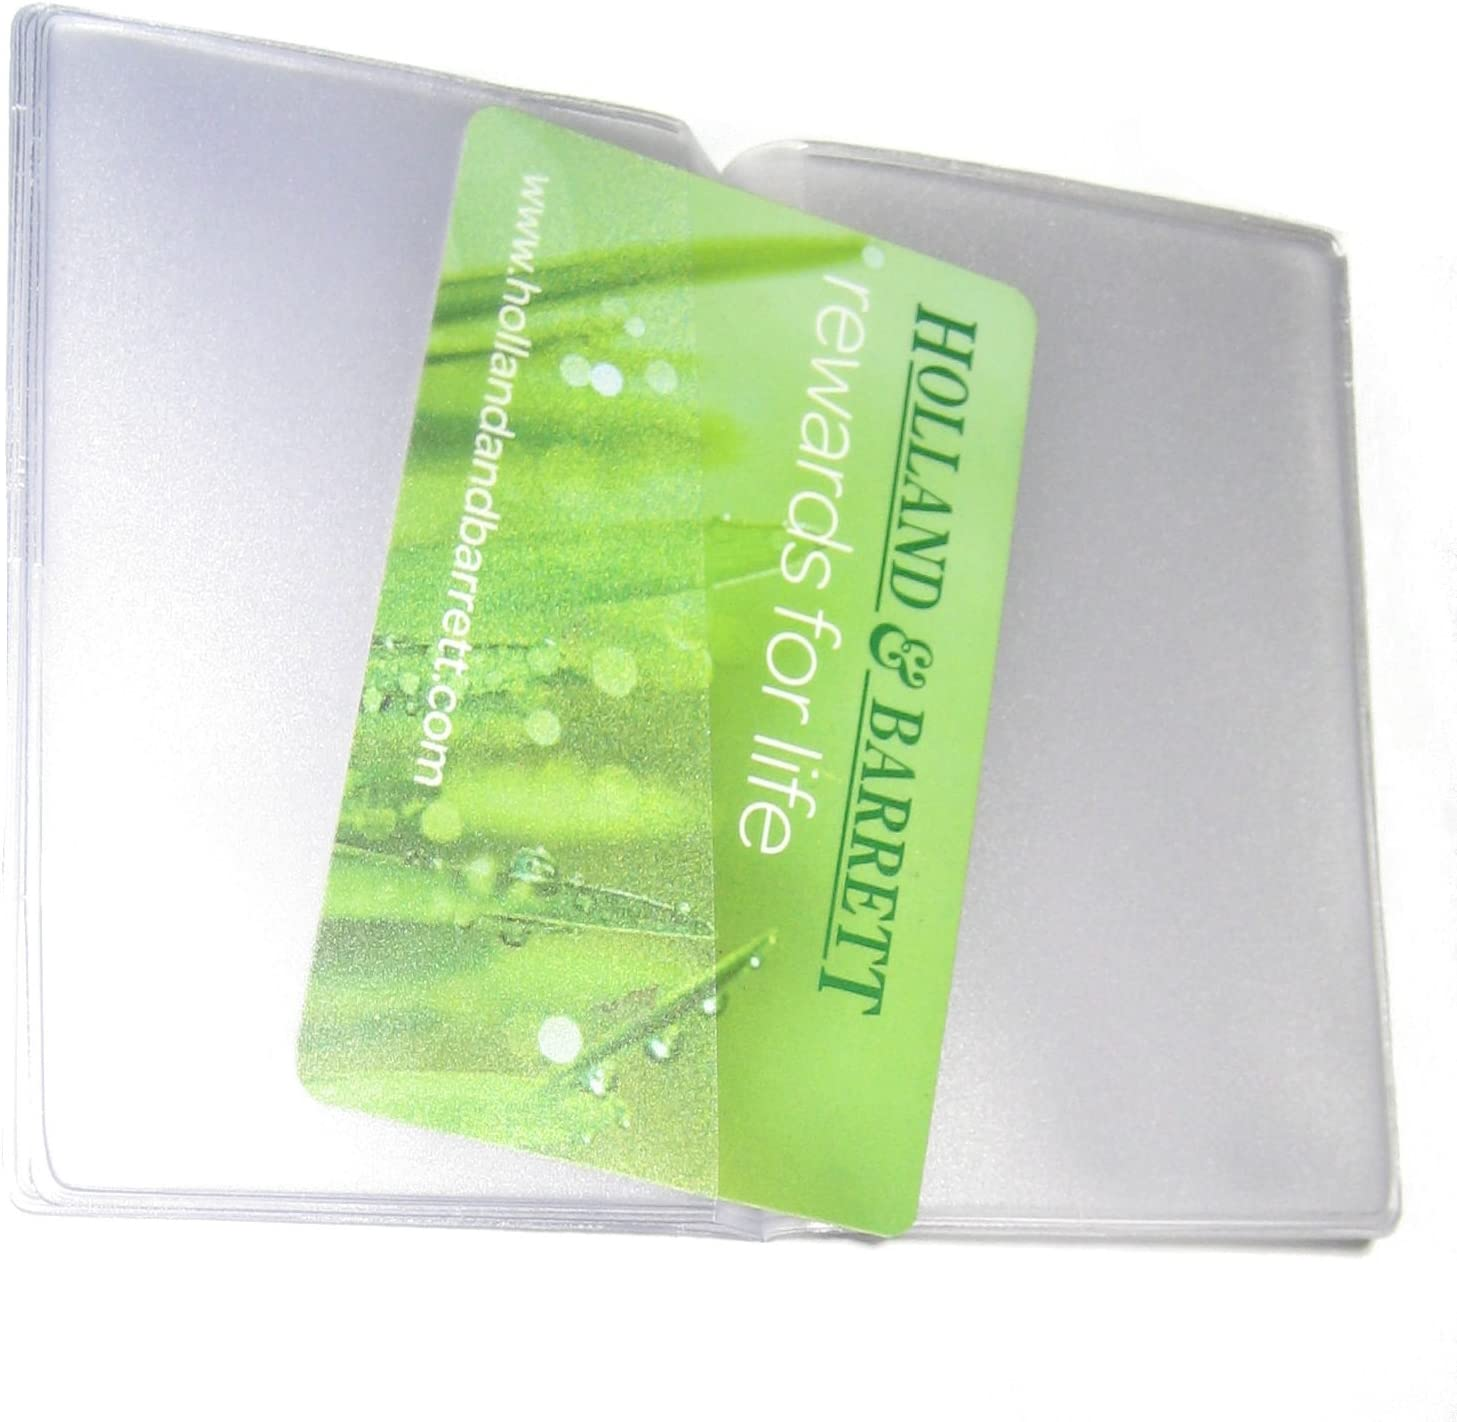 Quality Replacement Credit Card Purse//Wallet Insert Sleeves for 6 Cards 1 x Portrait